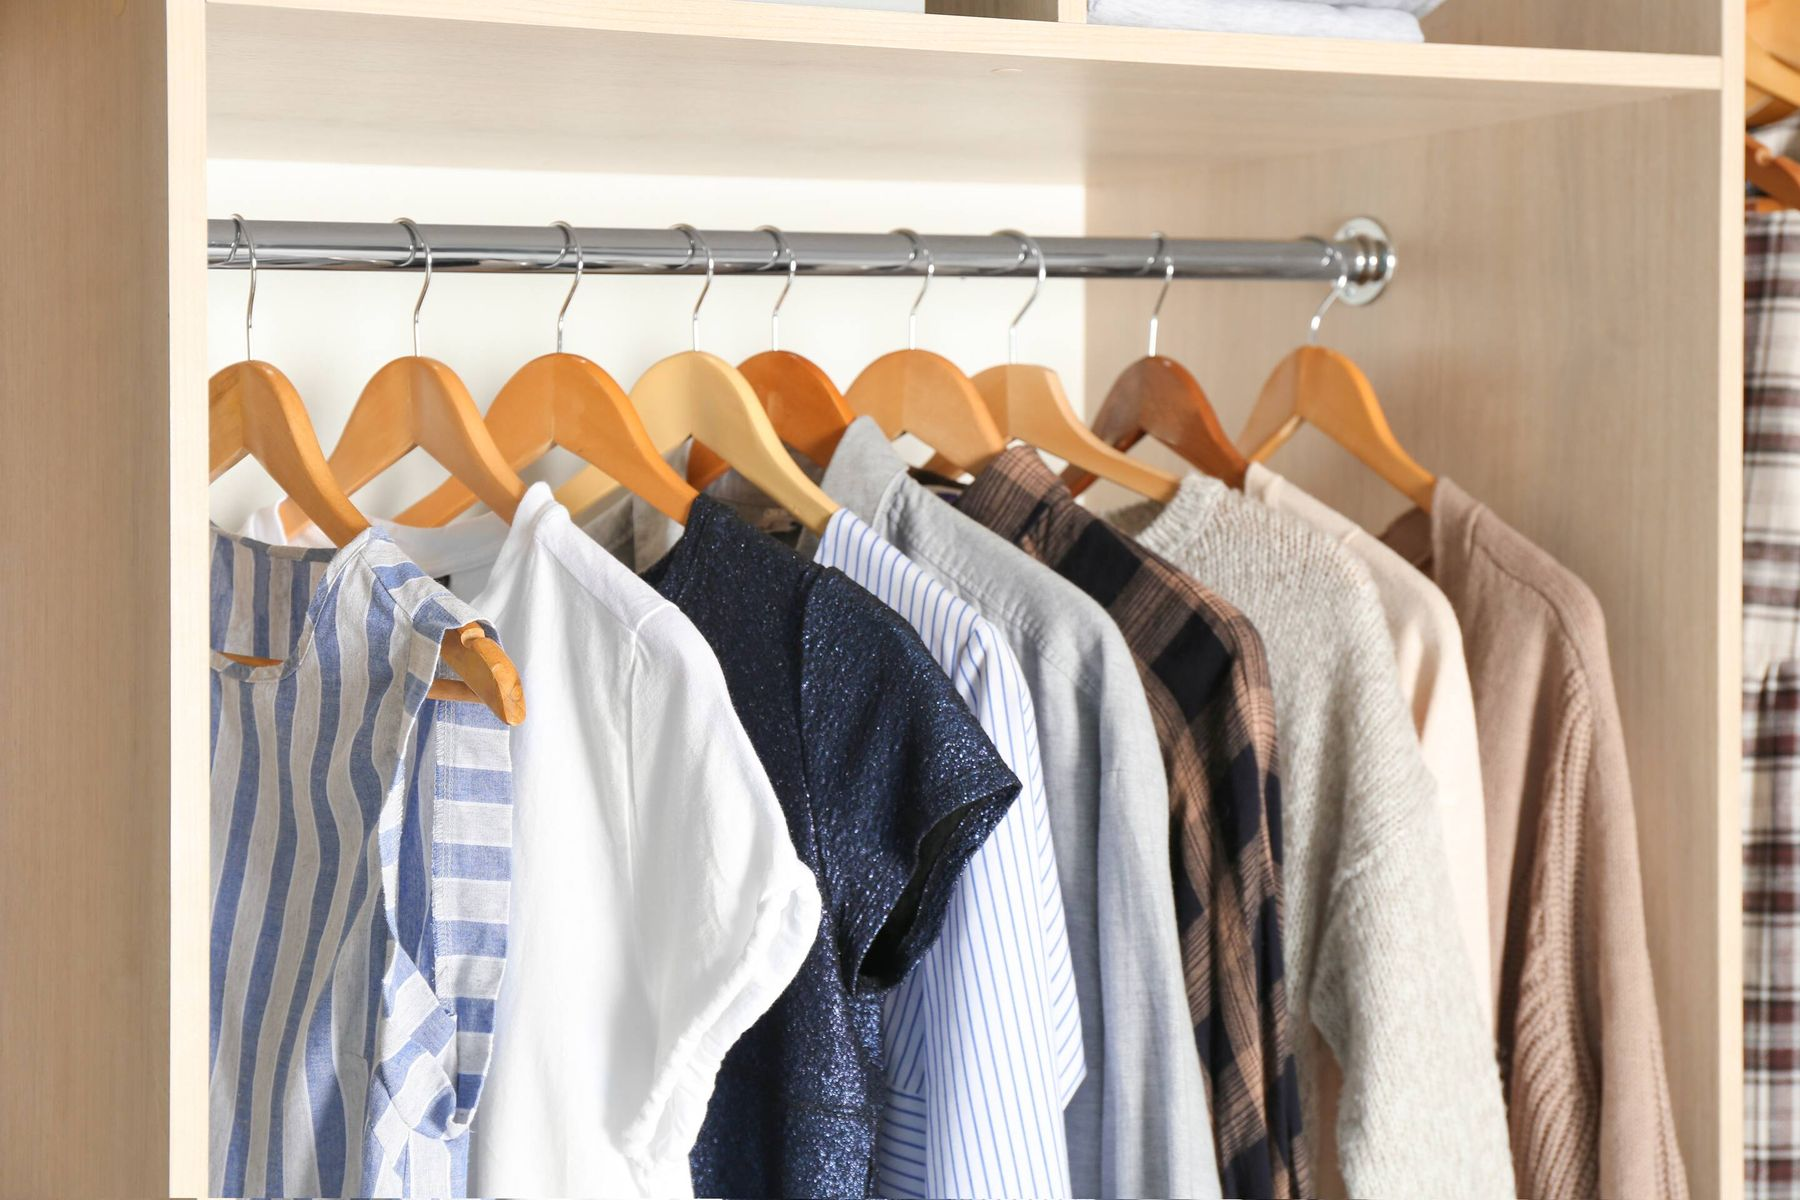 clothes hanging on hangers in wardrobe